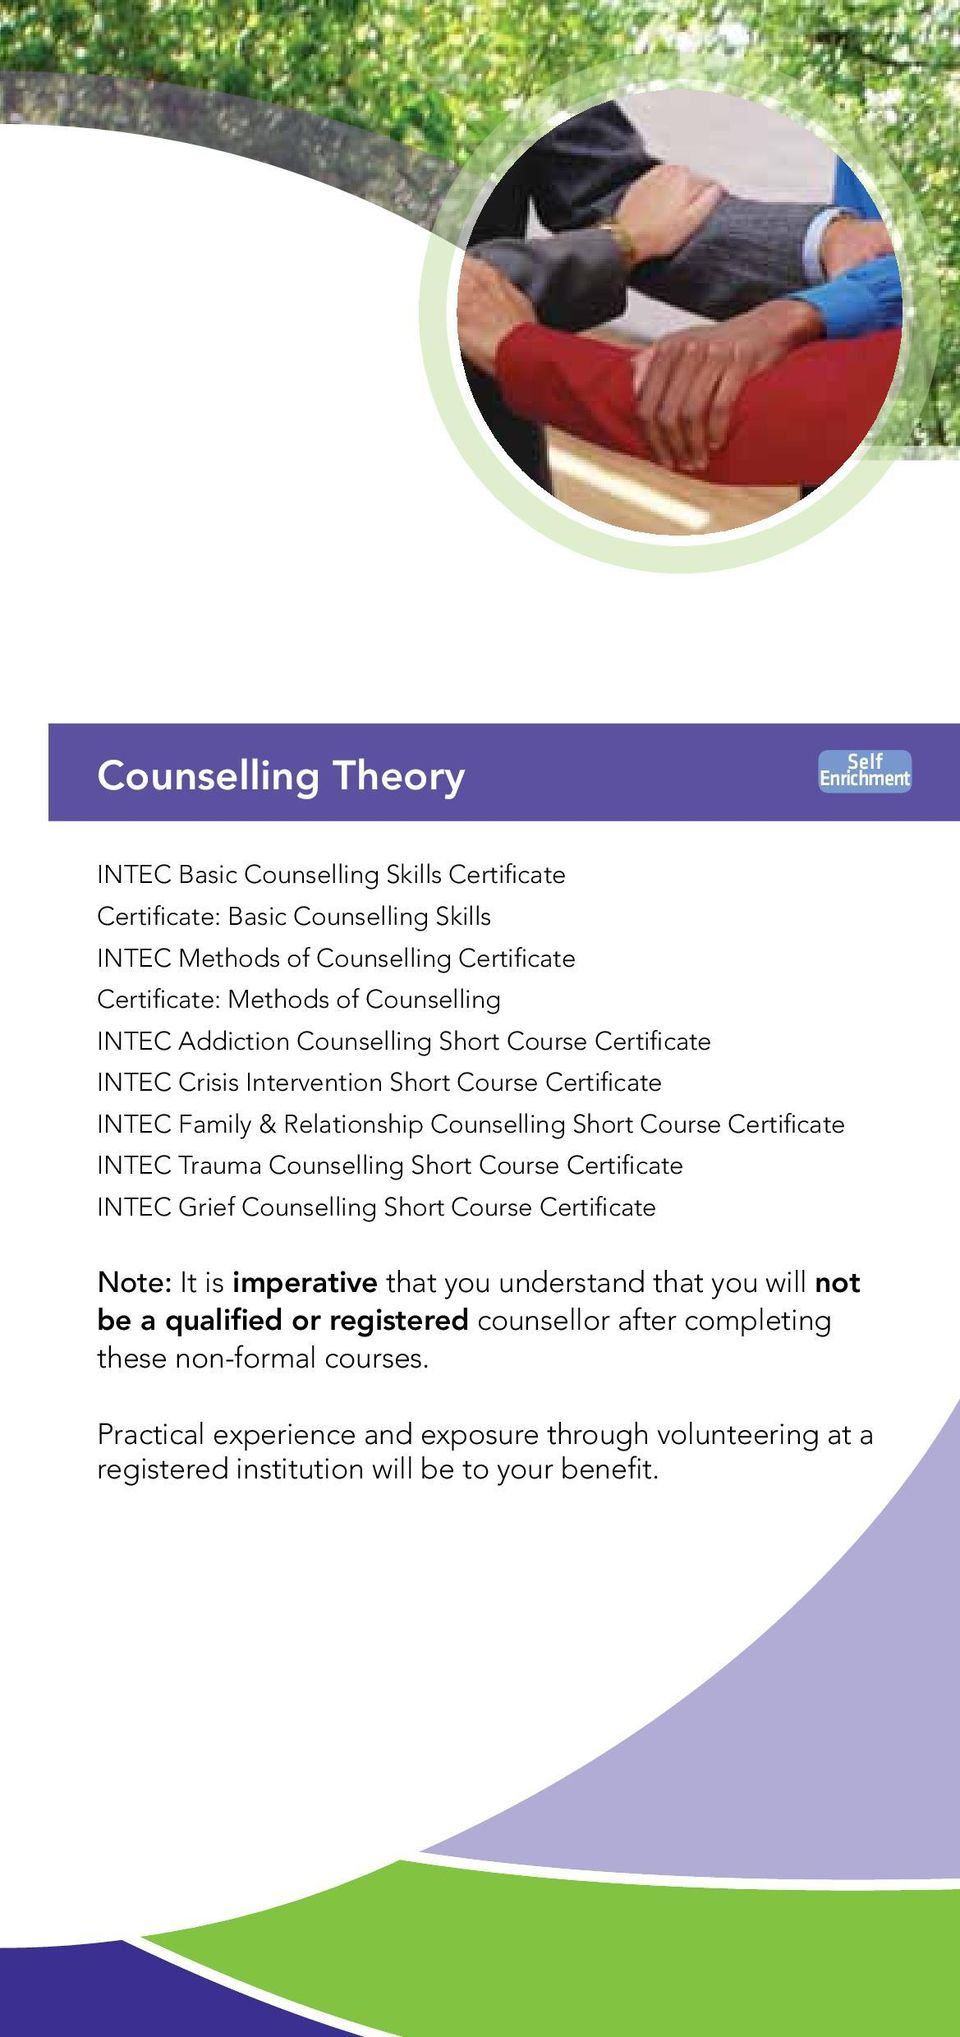 Certificate INTEC Trauma Counselling Short Course Certificate INTEC Grief Counselling Short Course Certificate Note: It is imperative that you understand that you will not